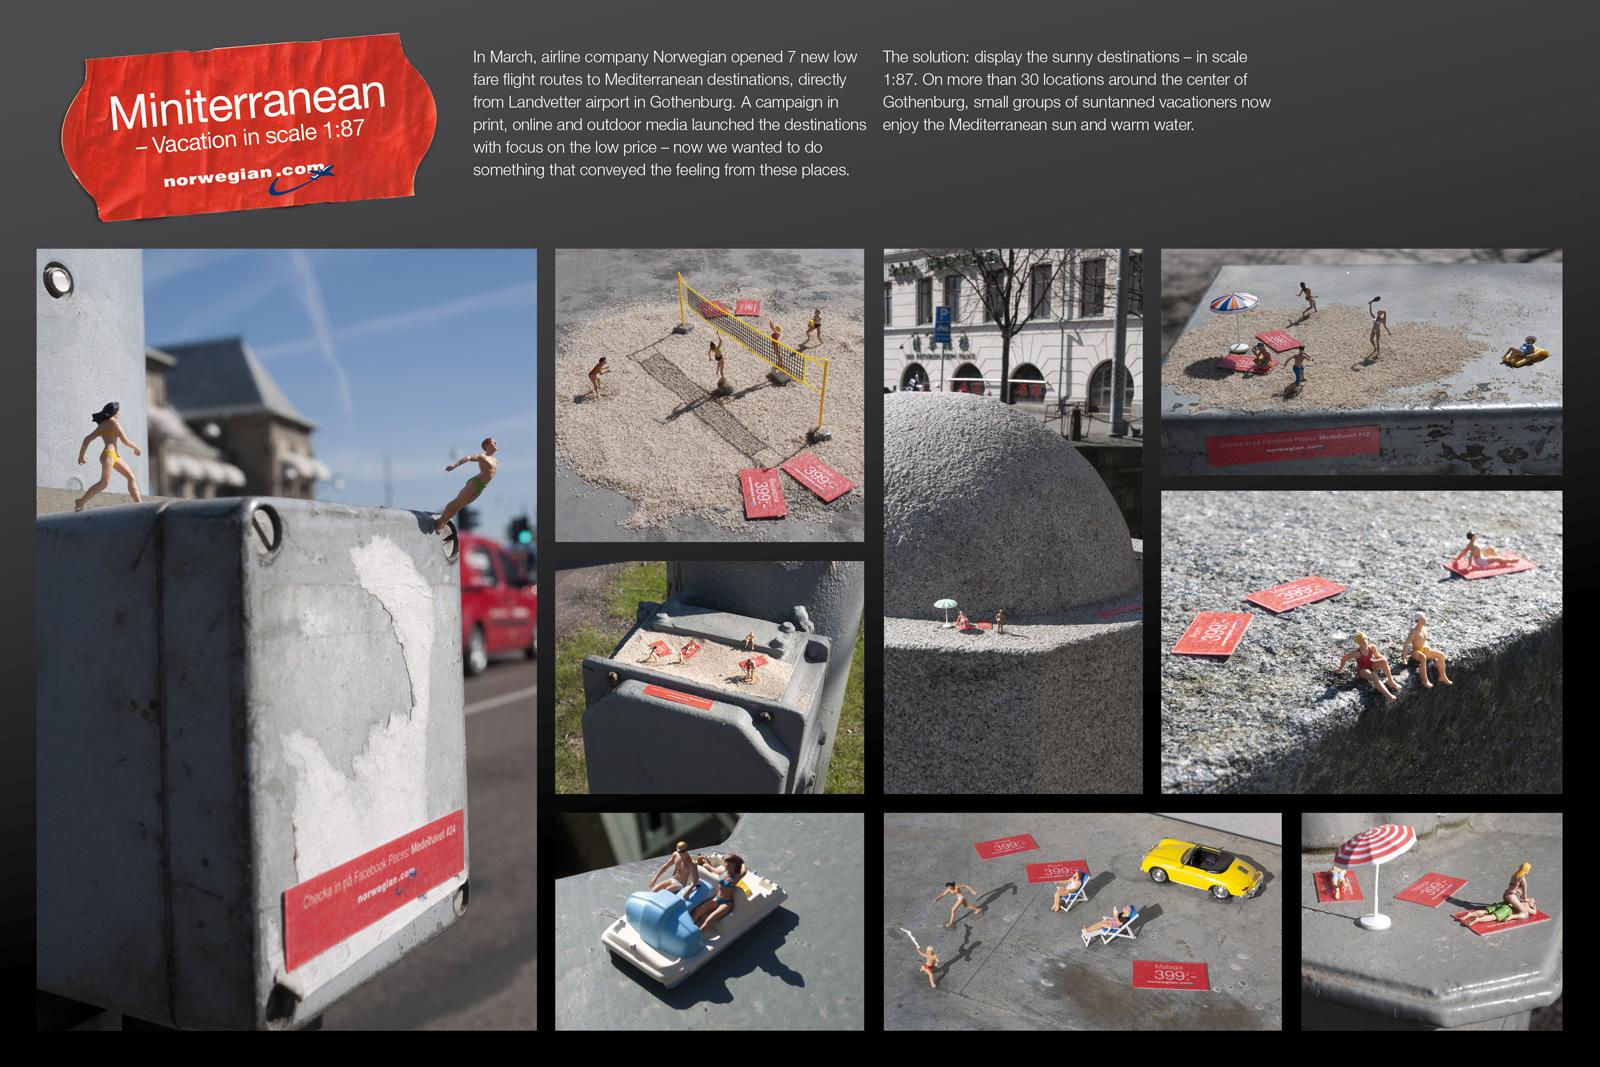 Norwegian Air Shuttle Ambient Ad -  Miniterranean - Vacation in scale 1 87